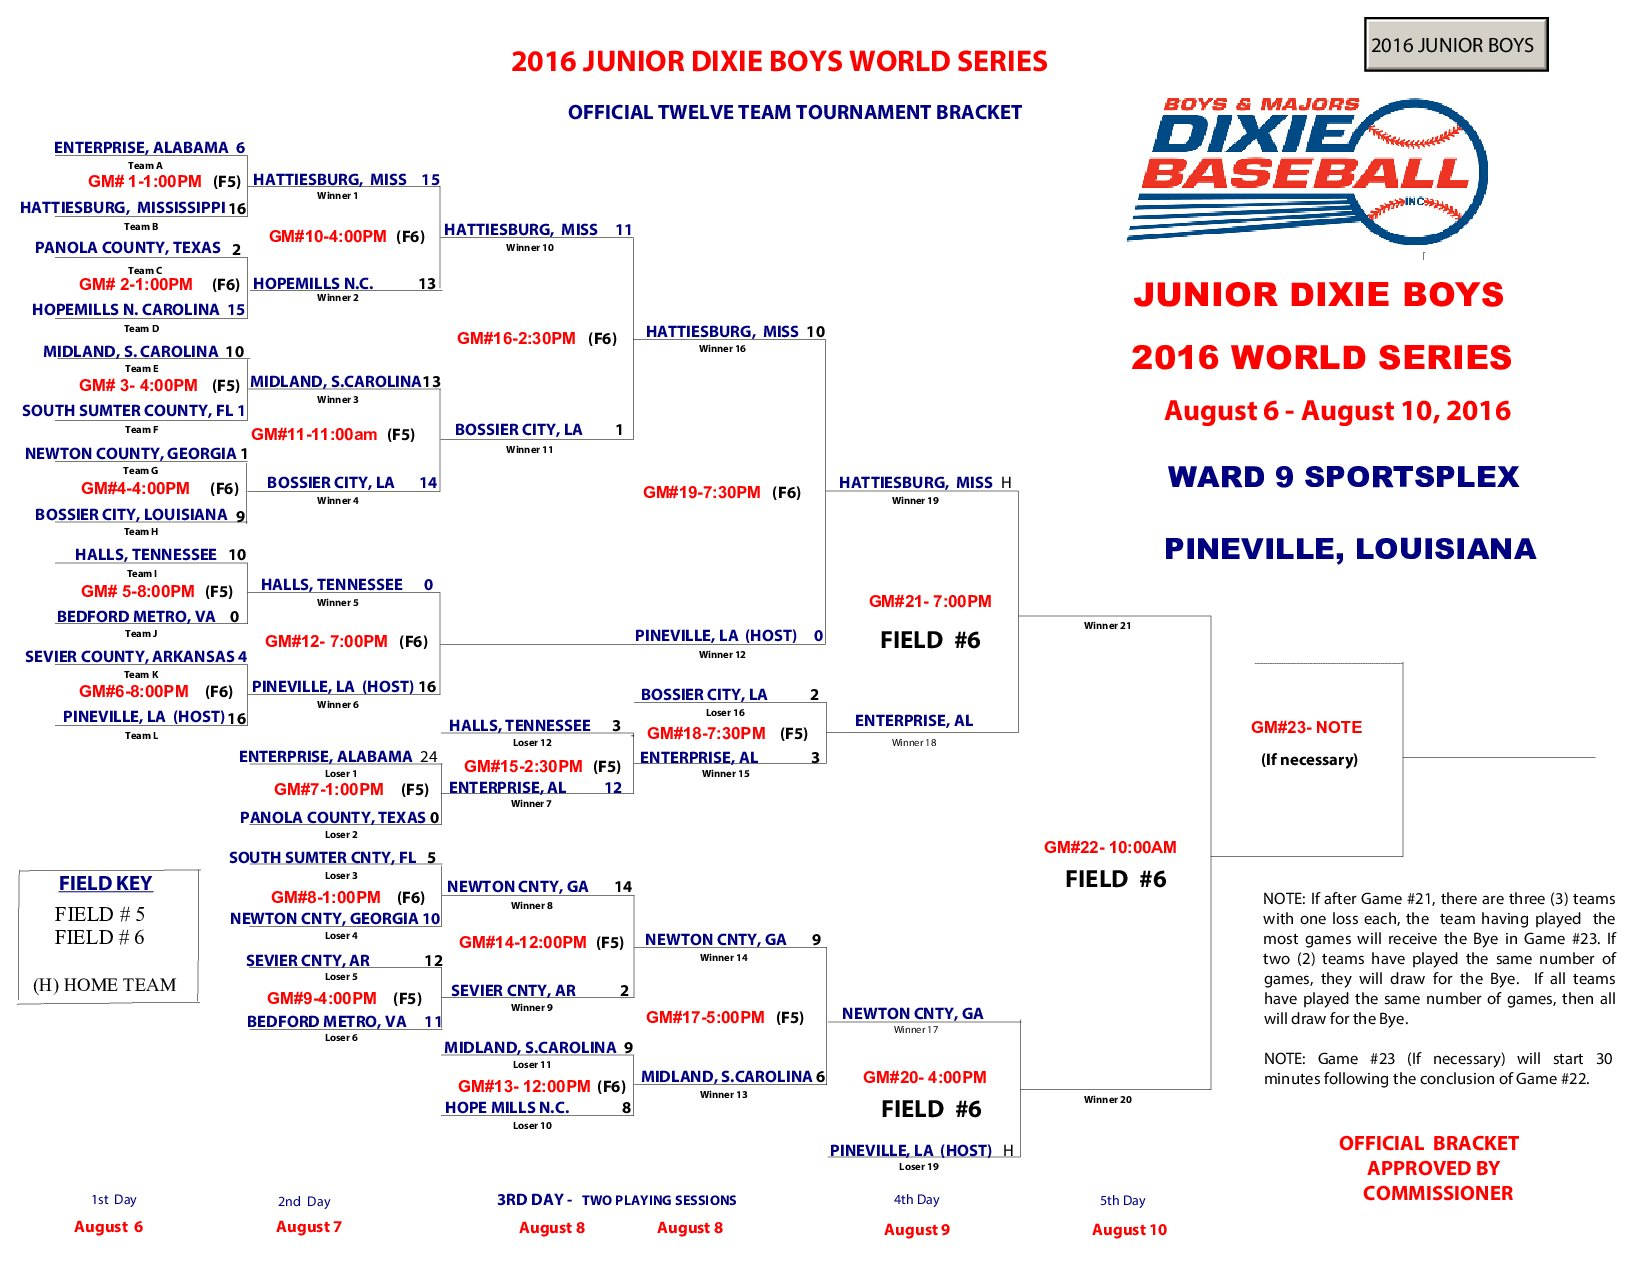 DIXIE YOUTH BASEBALL - Updated